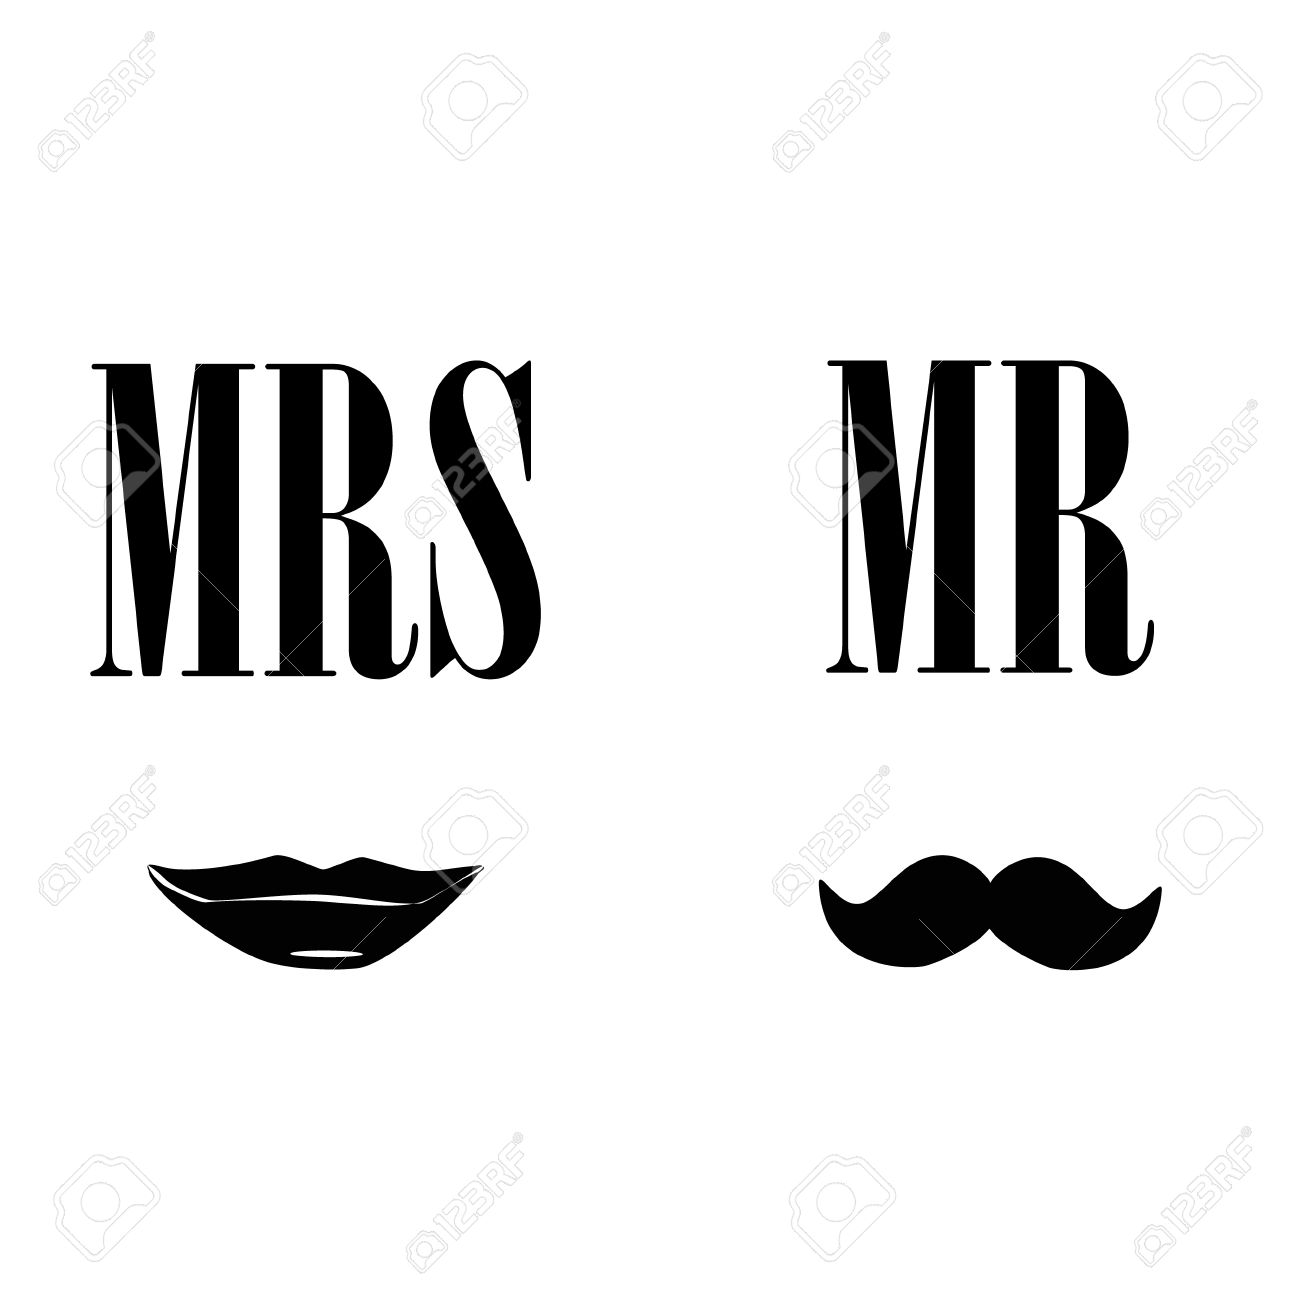 55,367 Mustache Stock Vector Illustration And Royalty Free.